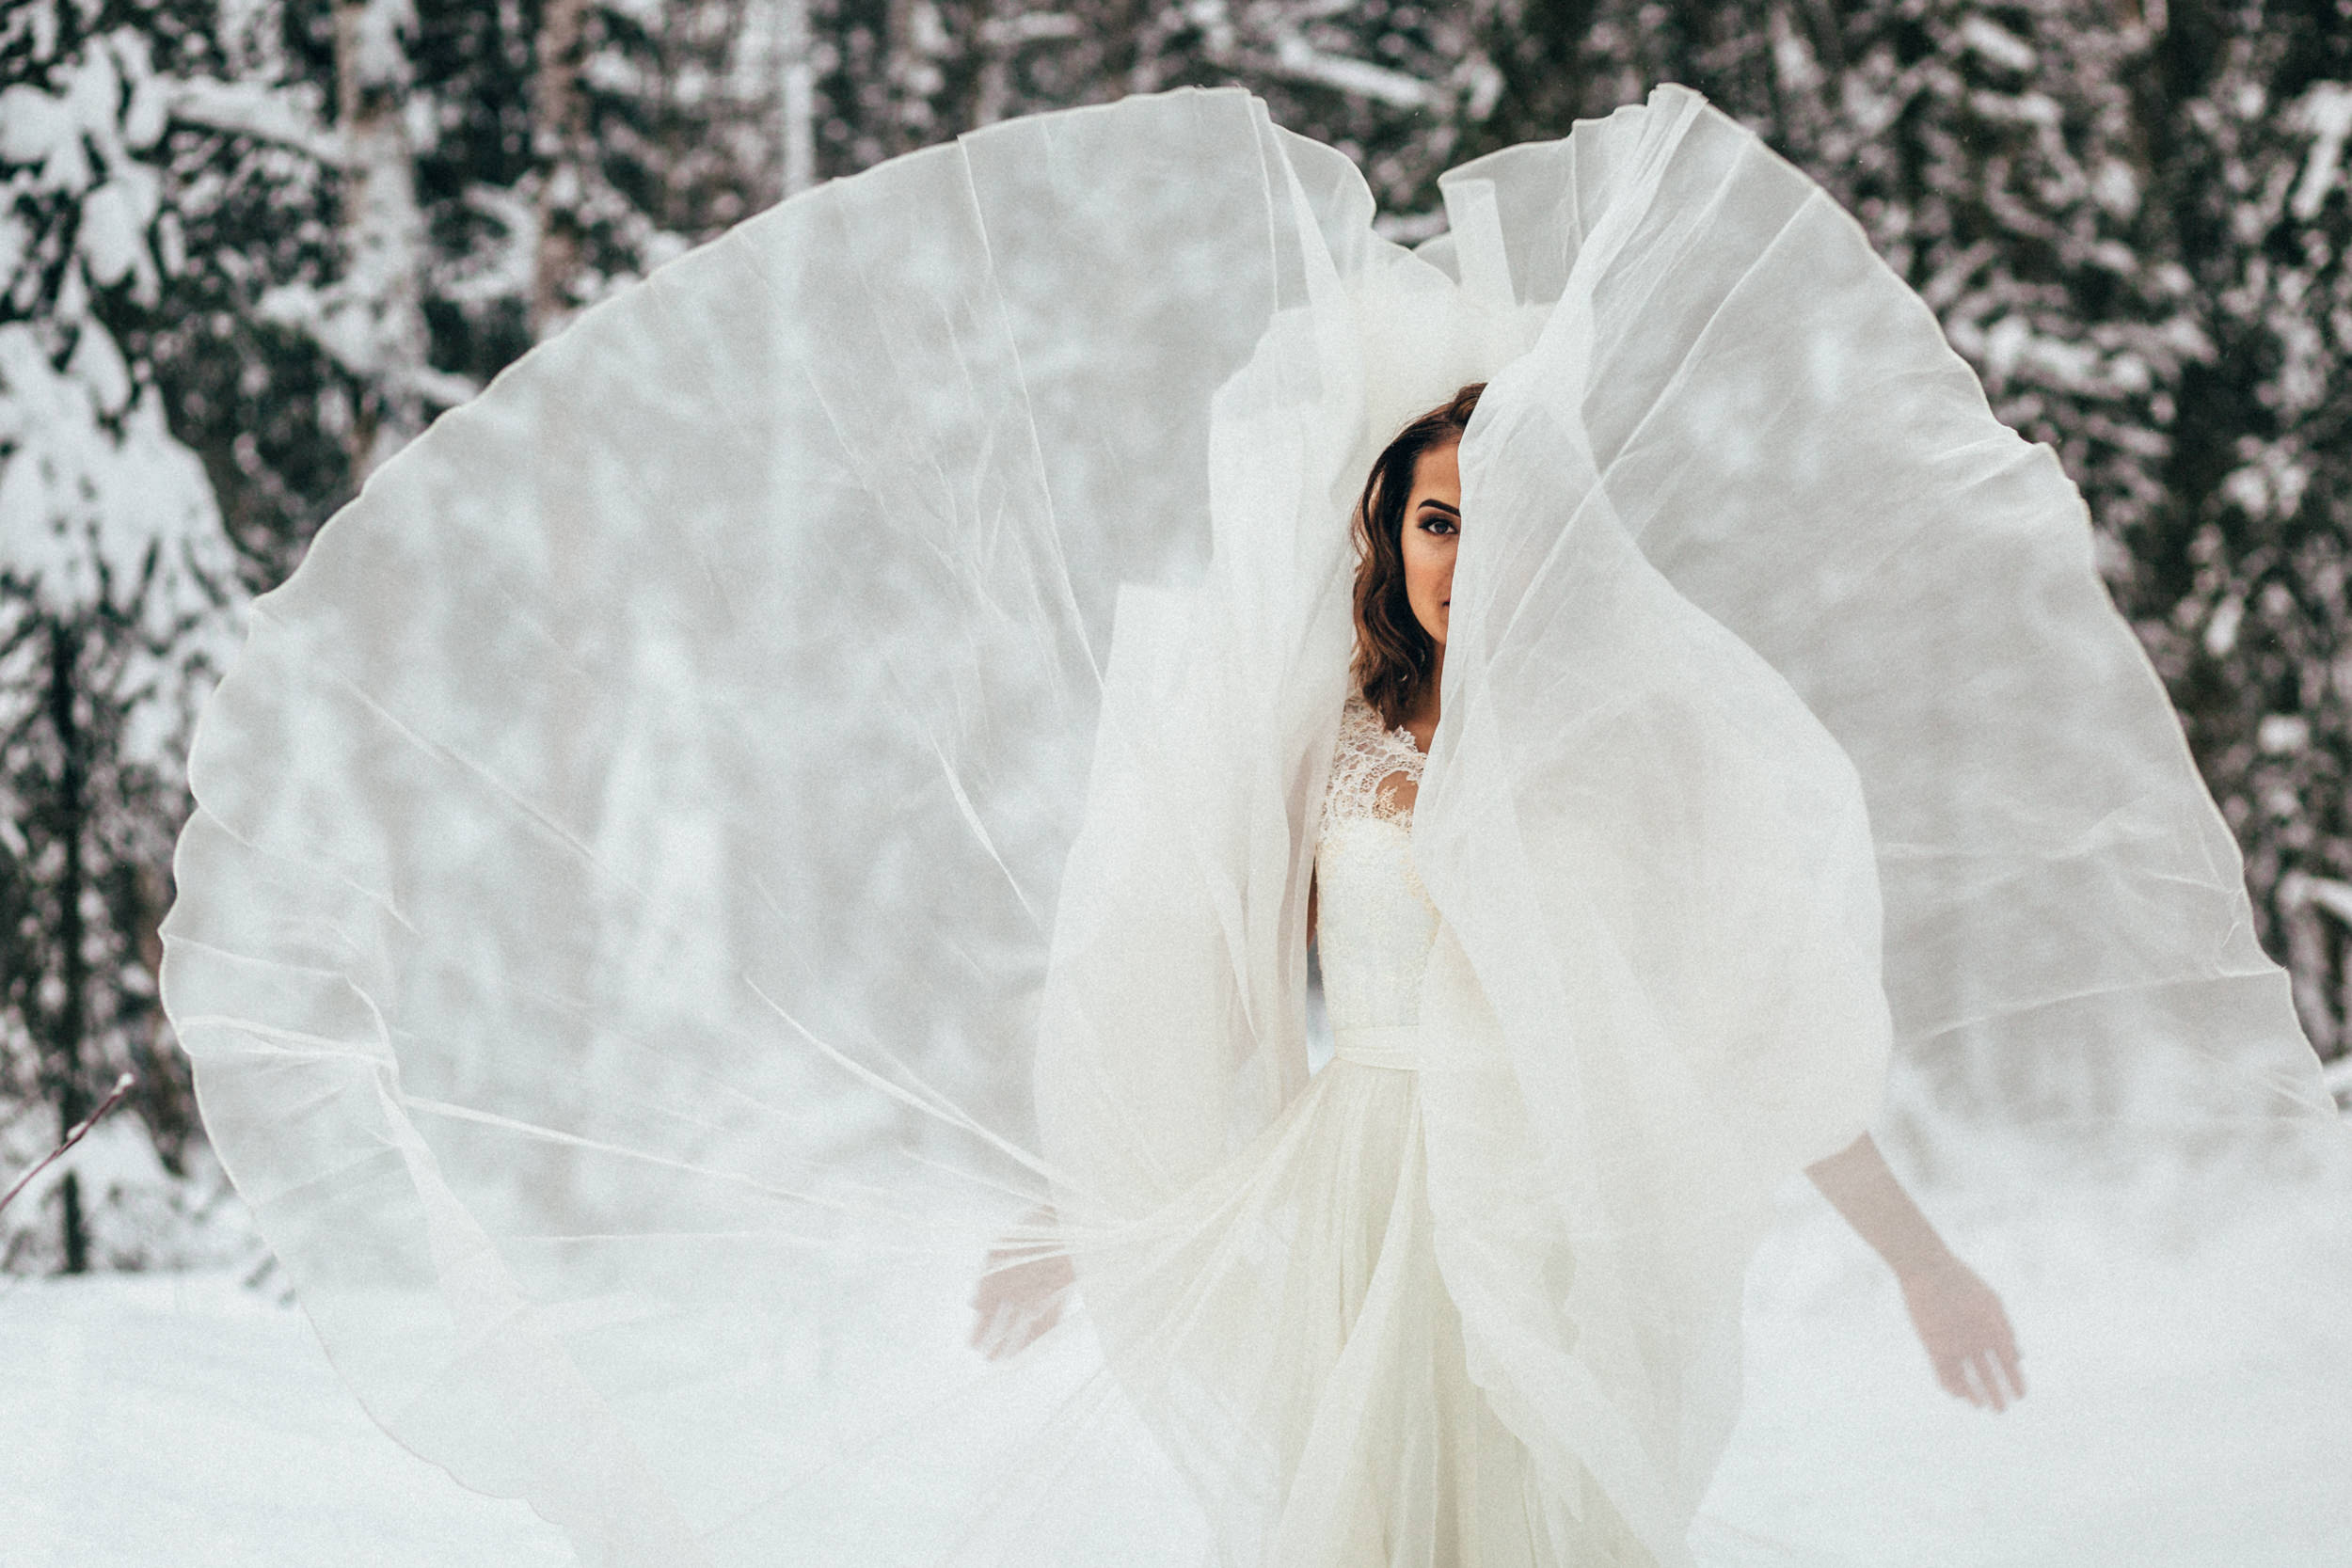 Bride twirling gown